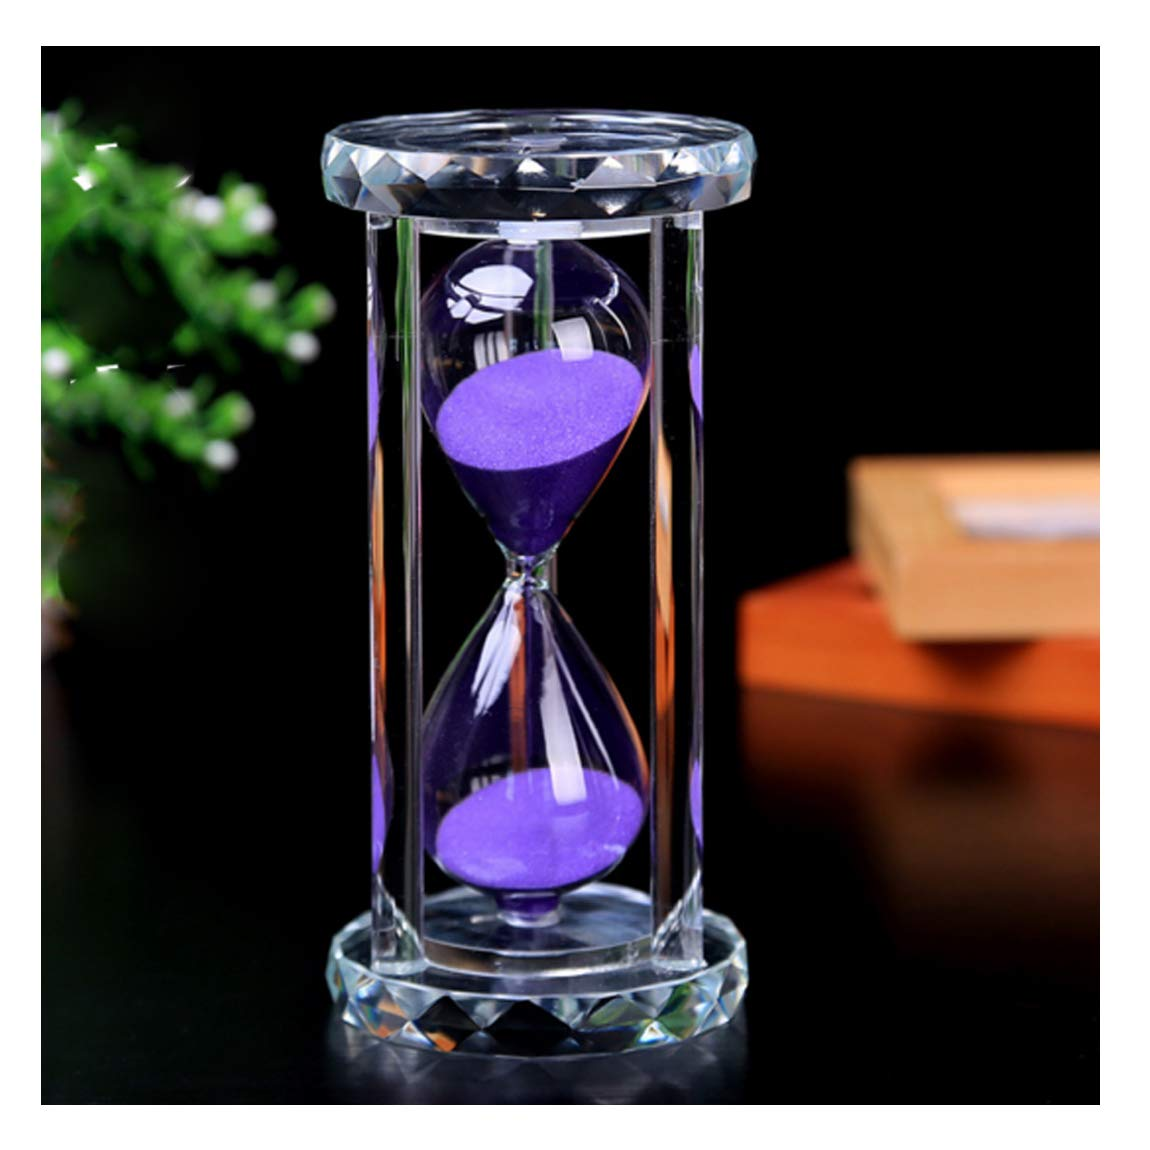 SZAT PRO Hourglass, Sand Timer 30 Min/Mins Hour Glass with Gift Box Package(Purple,Crystal)